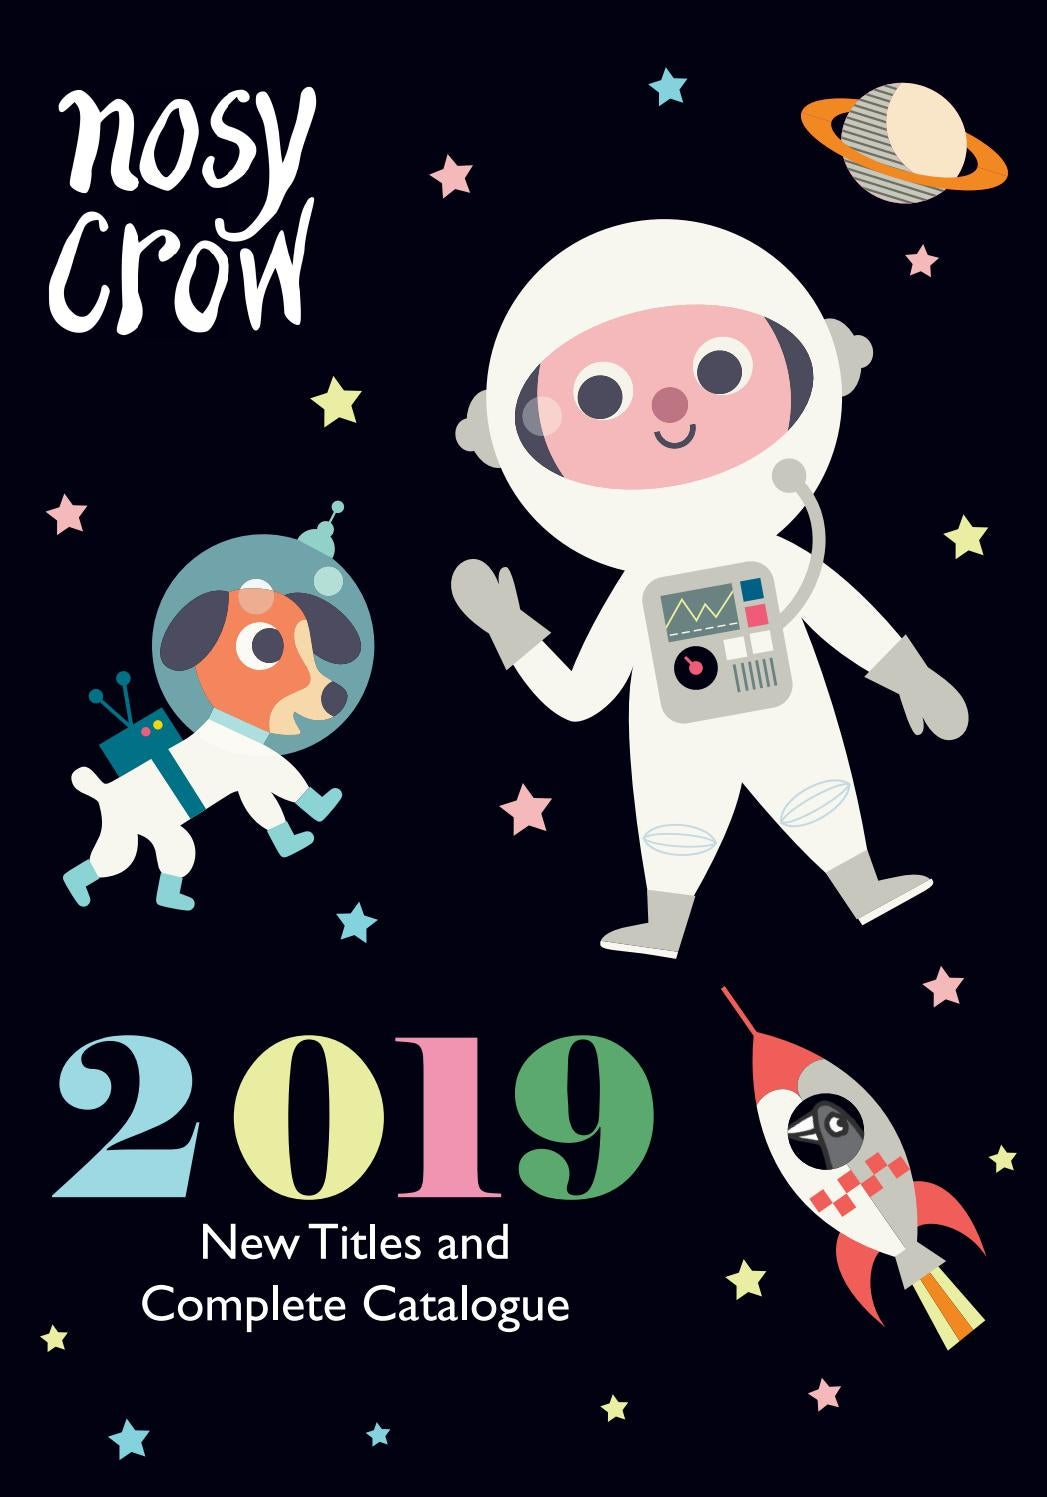 Nosy Crow 2019 Complete Catalogue by Nosy Crow - issuu